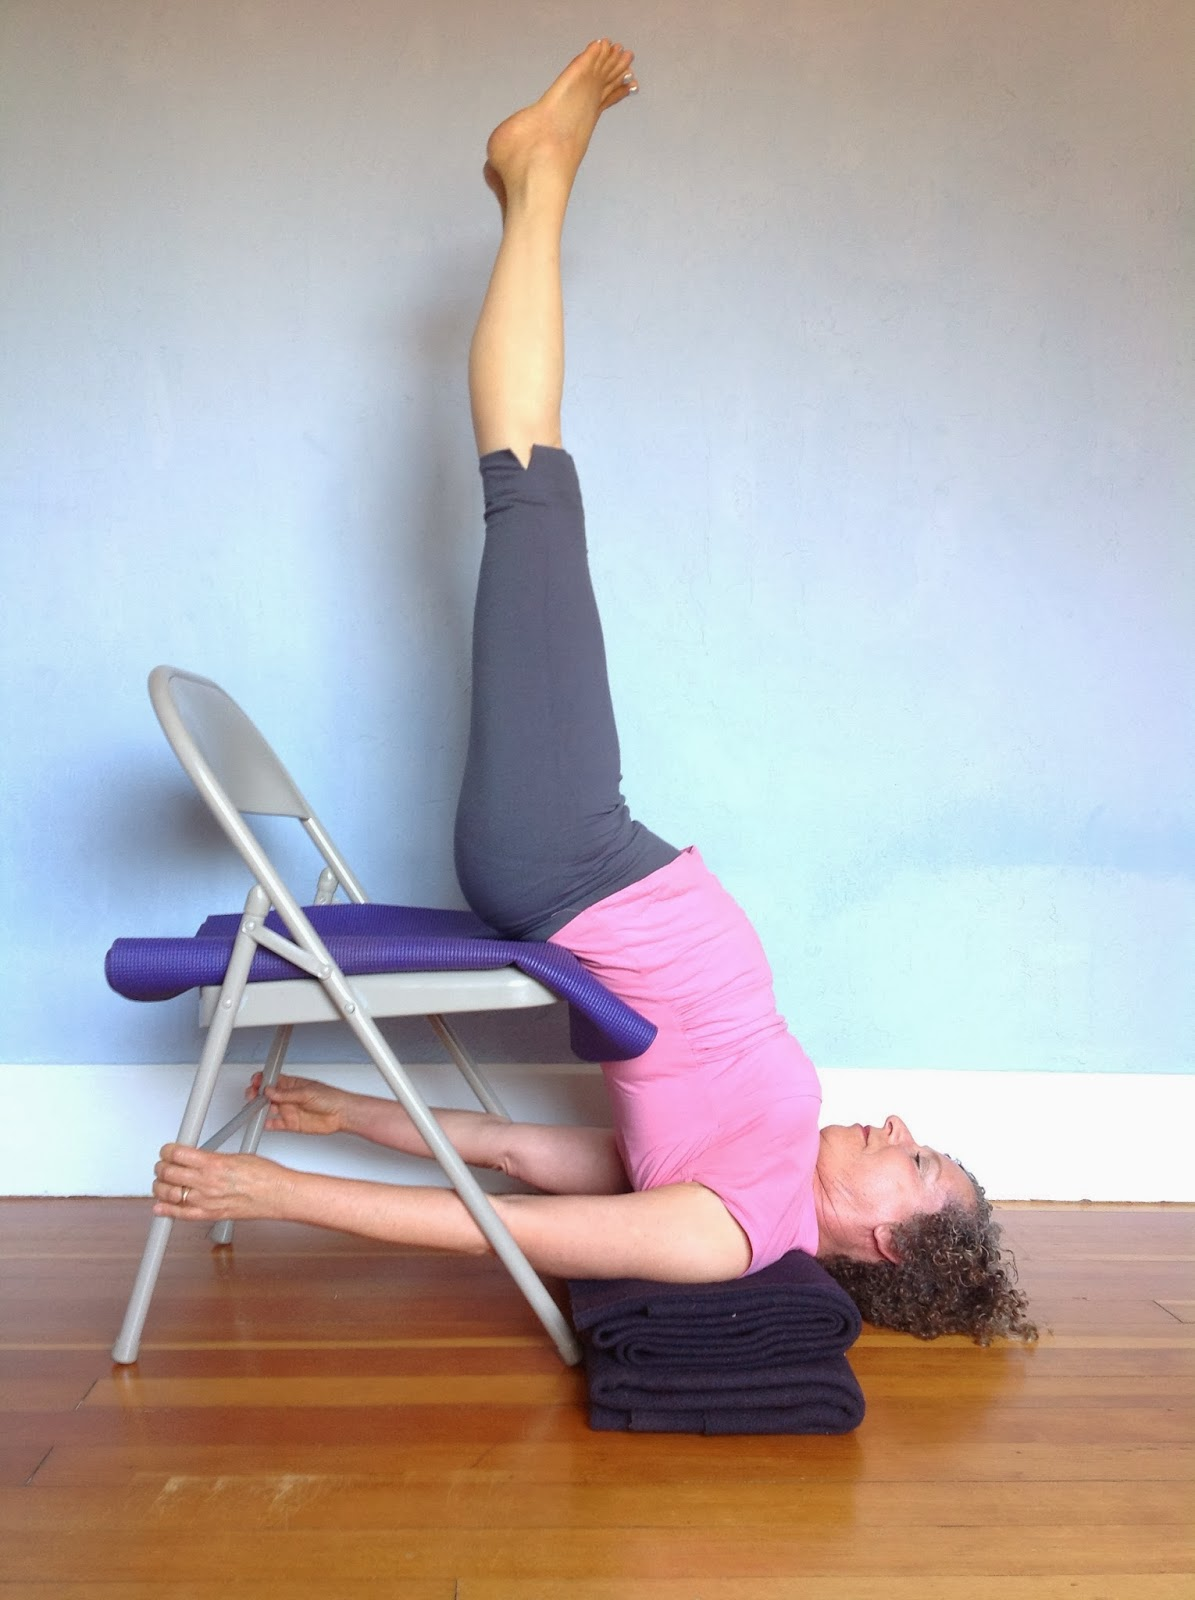 Yoga Chair Pose Guitar Chairs And Stools Featured Shoulderstand For Healthy Aging